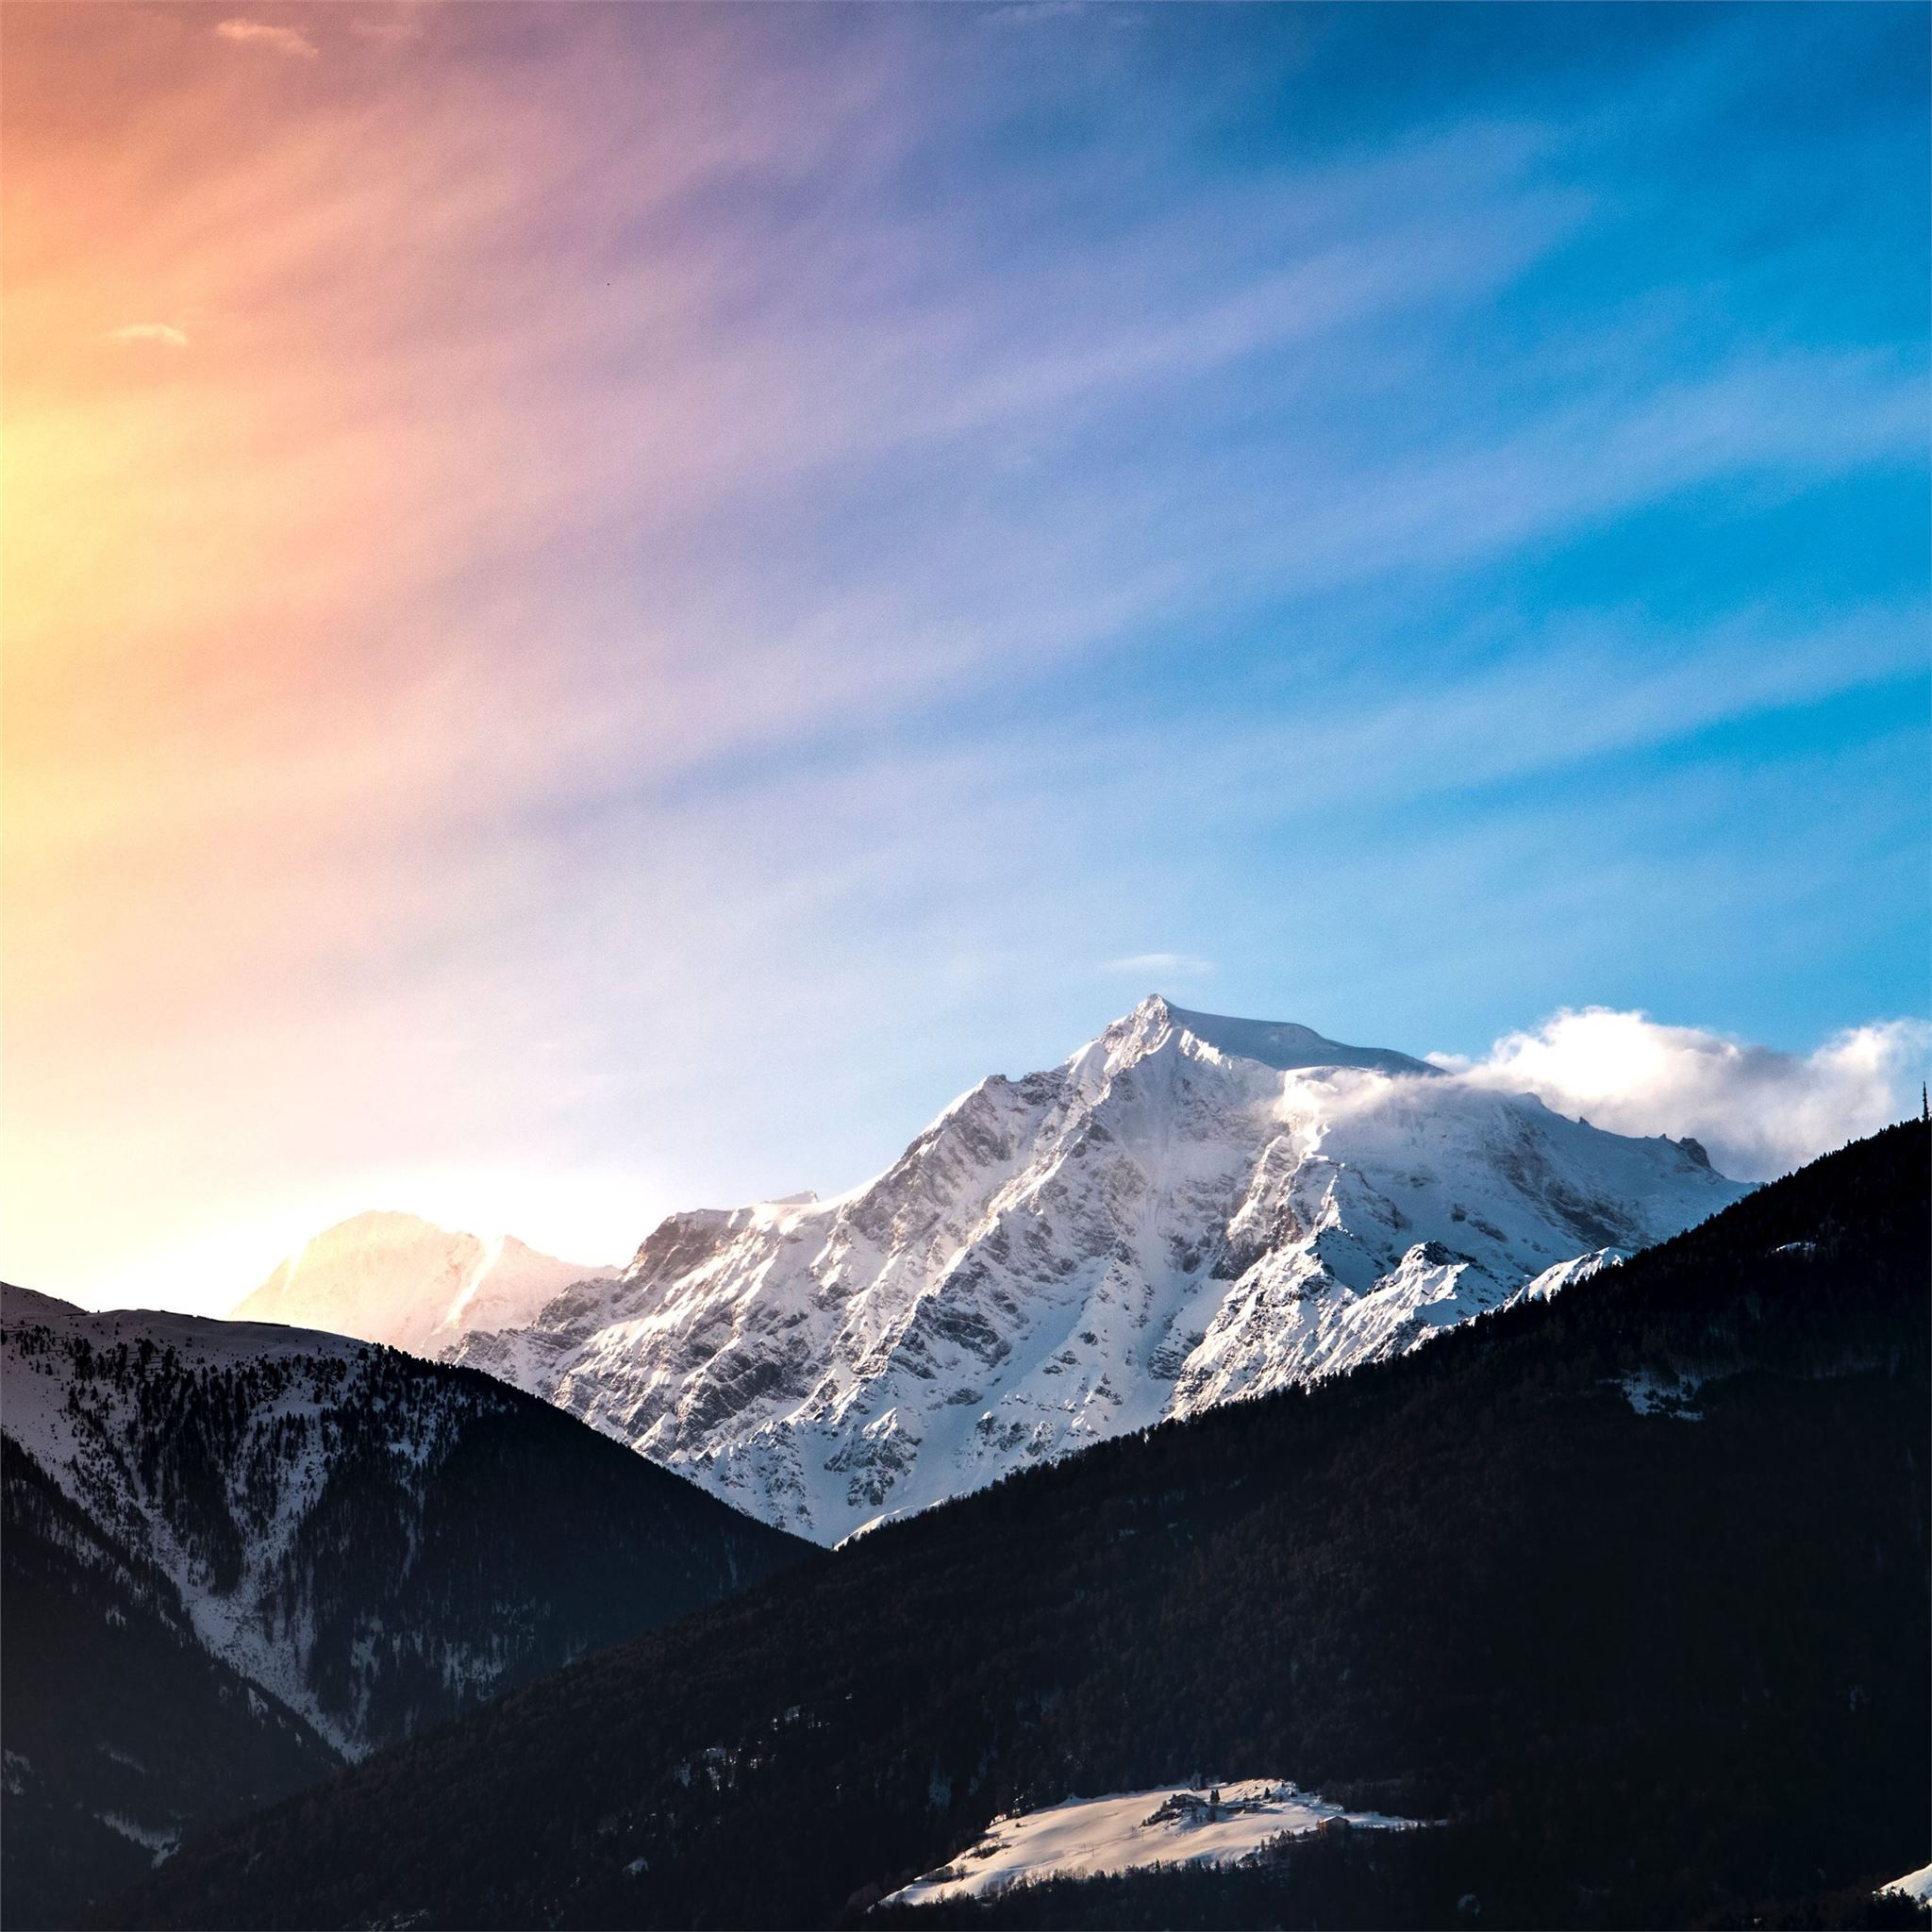 Snow Covered Mountain 5k Snow Mountains Nature 4k 5k Hd Nature Wallpapers Ipad Air Wallpaper Nature Wallpaper